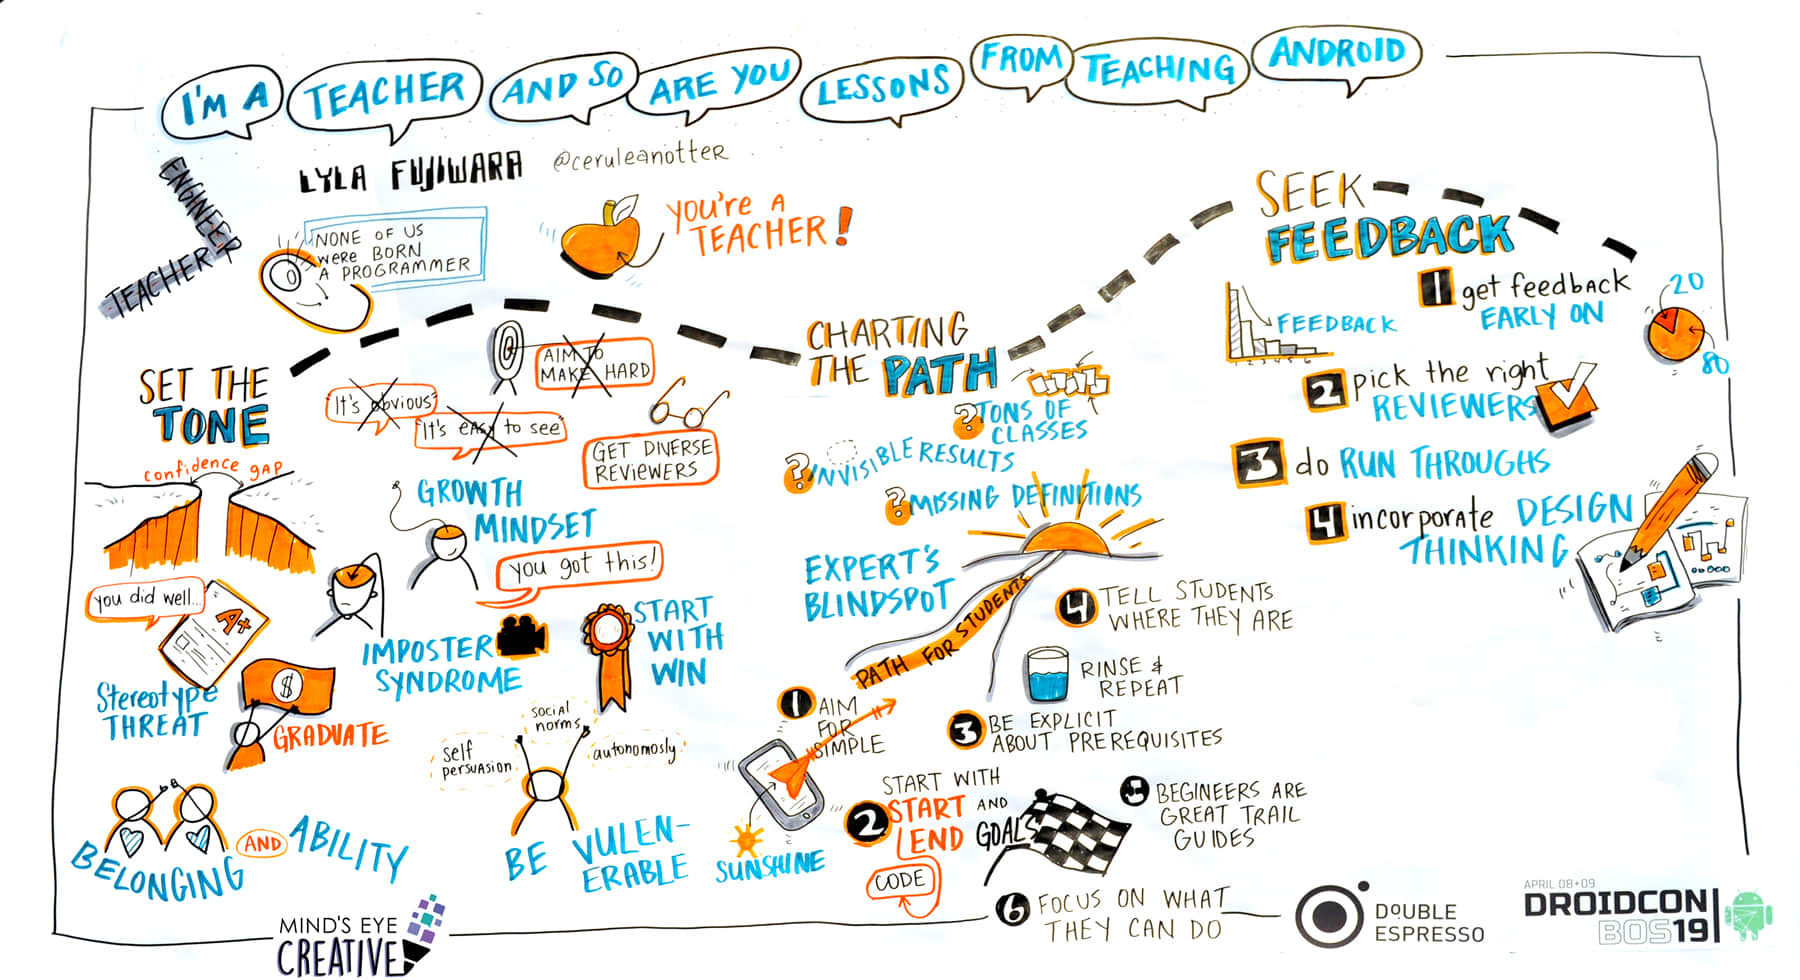 Graphic recording example from DroidCon 2019